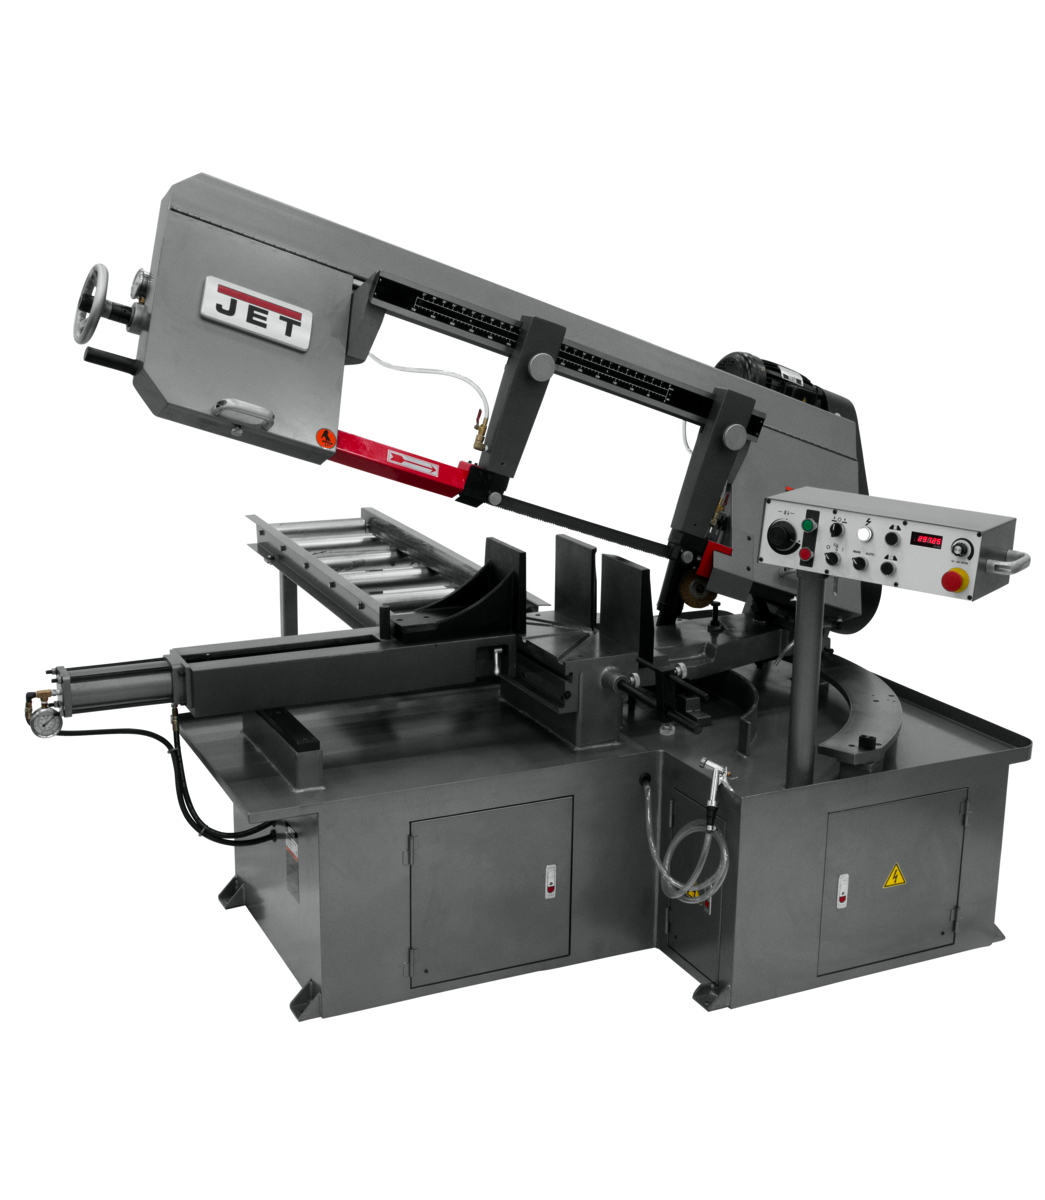 MBS-1323EVS-H-4, Semi-Automatic Dual Mitering Bandsaw 3HP 460V3HP 460V, 3-Ph